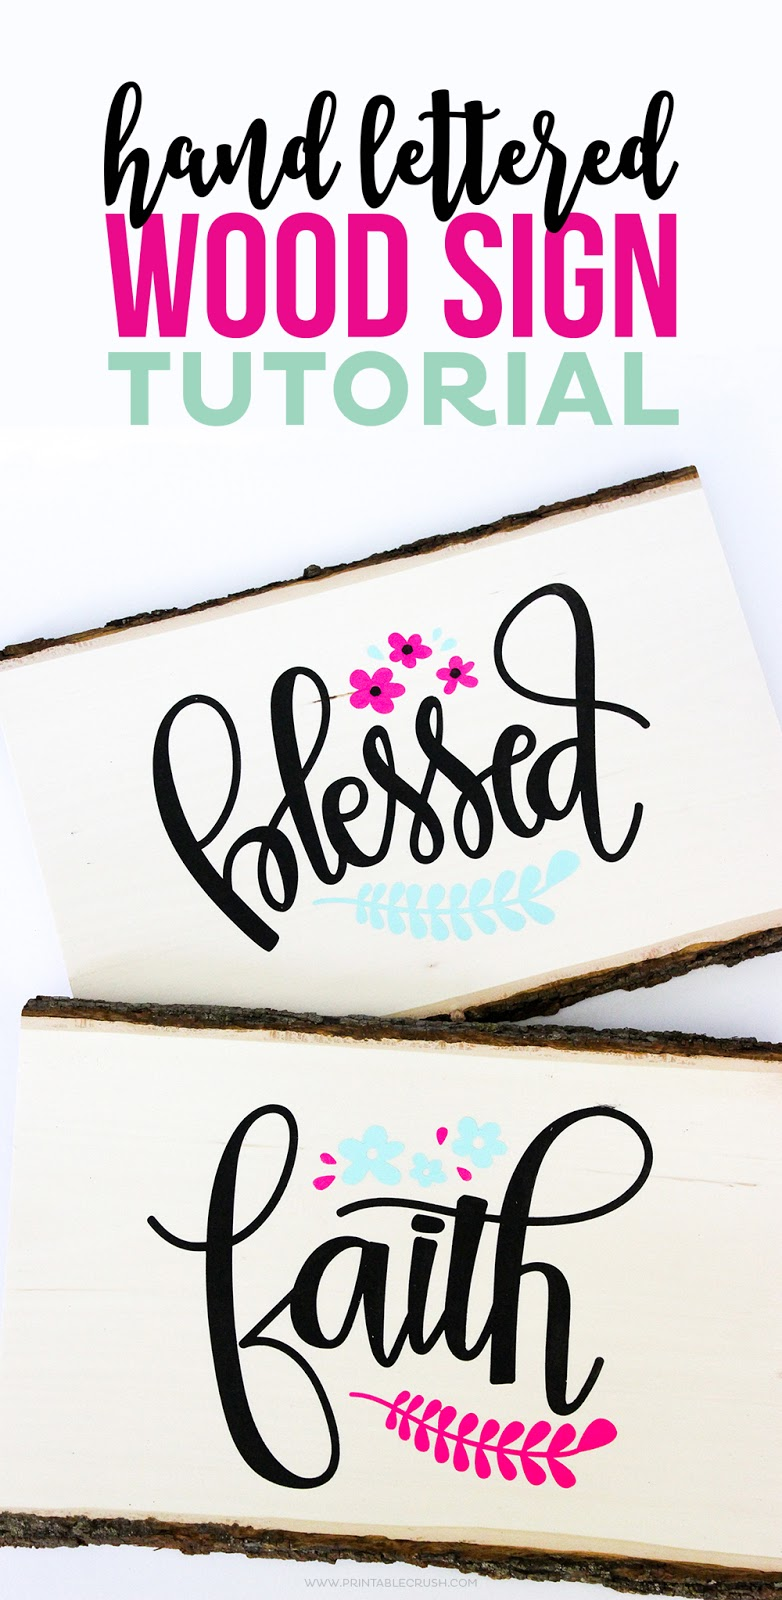 8 Cricut Projects You Can't Afford To Miss - Craftsonfire